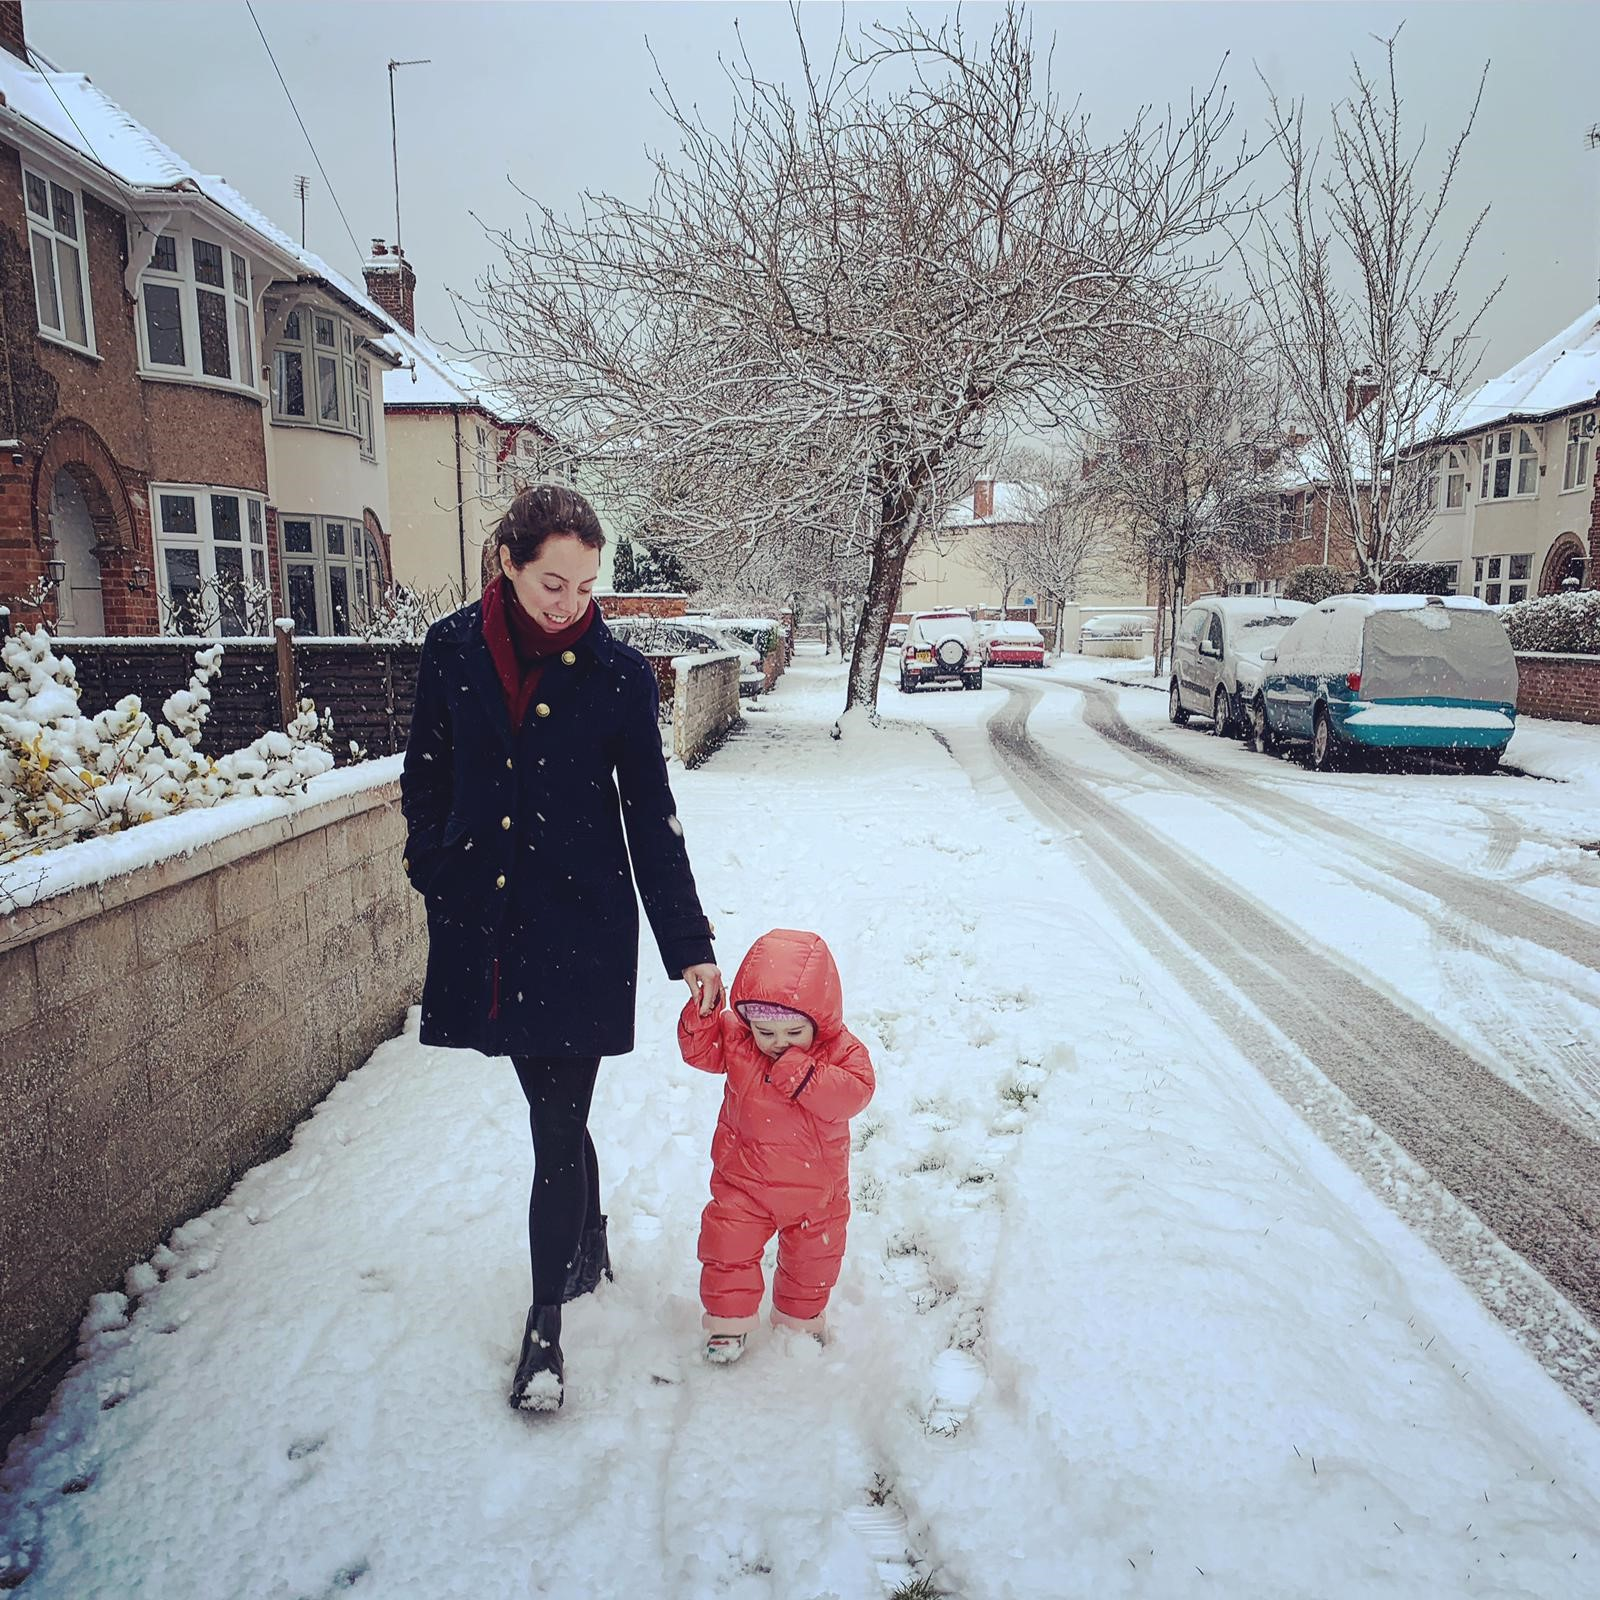 "Patagonia all-in-ones ""Wren loves it, like wearing a massive duvet. And the feathers make it warm and light - perfect"" - Wren (1) and Claire in snowy Cheltenham - where snow is a novelty!"